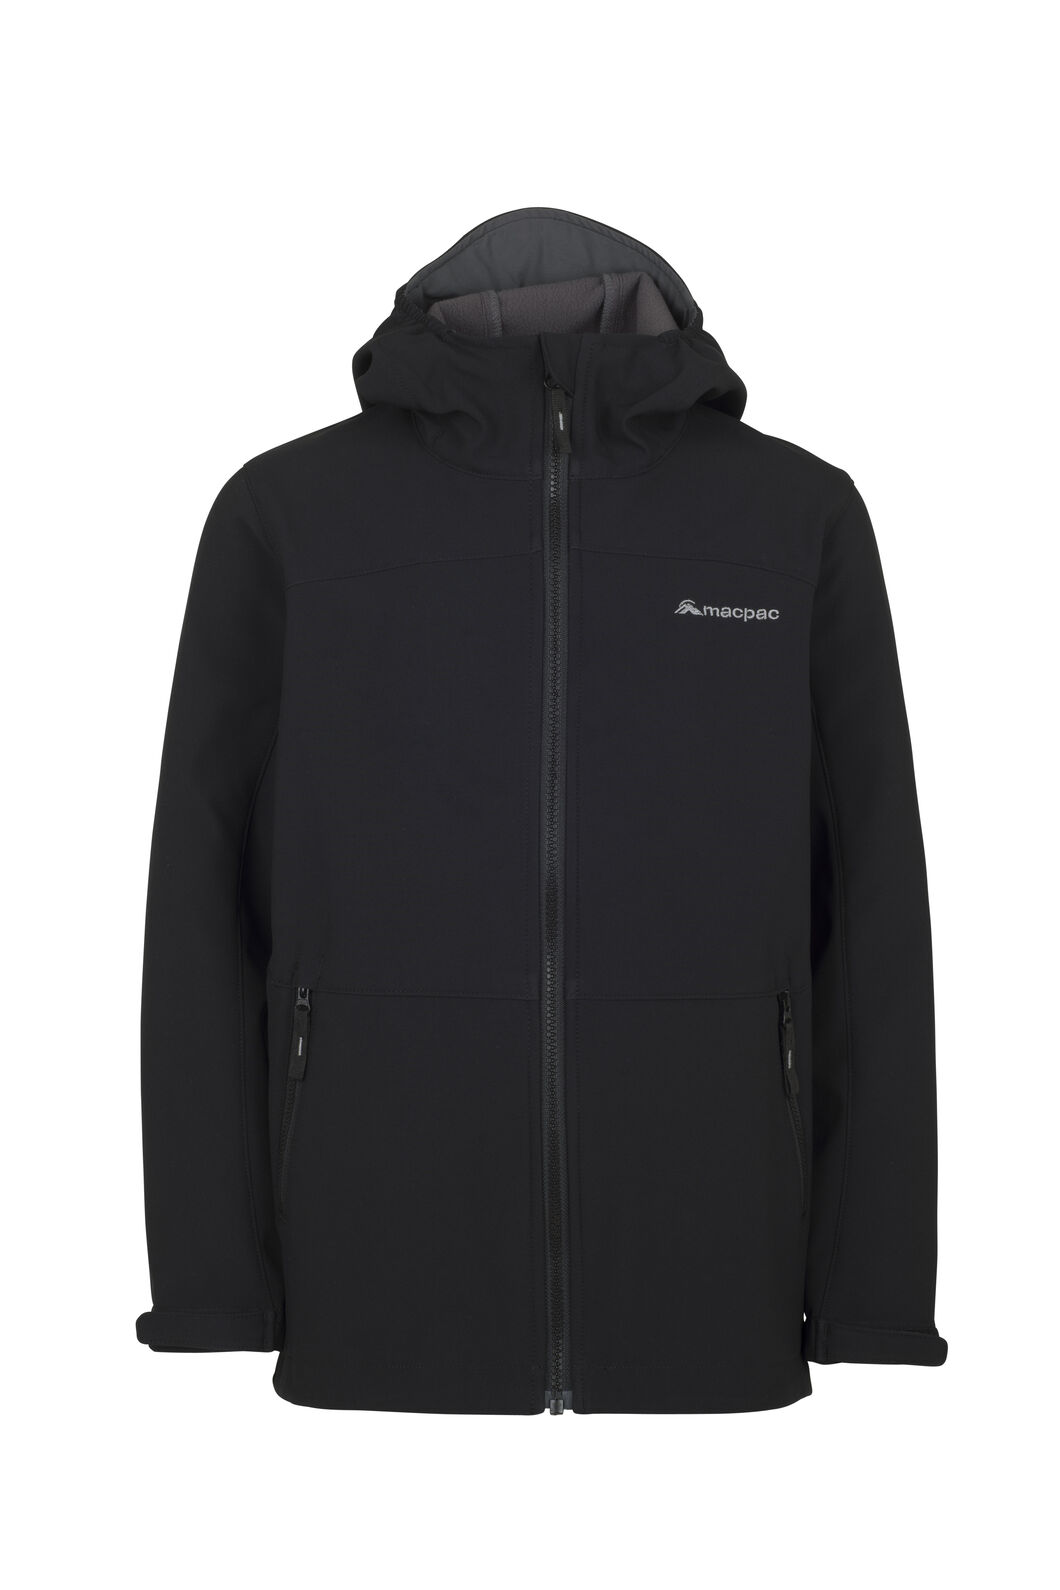 Macpac Sabre Hooded Jacket - Kids', Black, hi-res